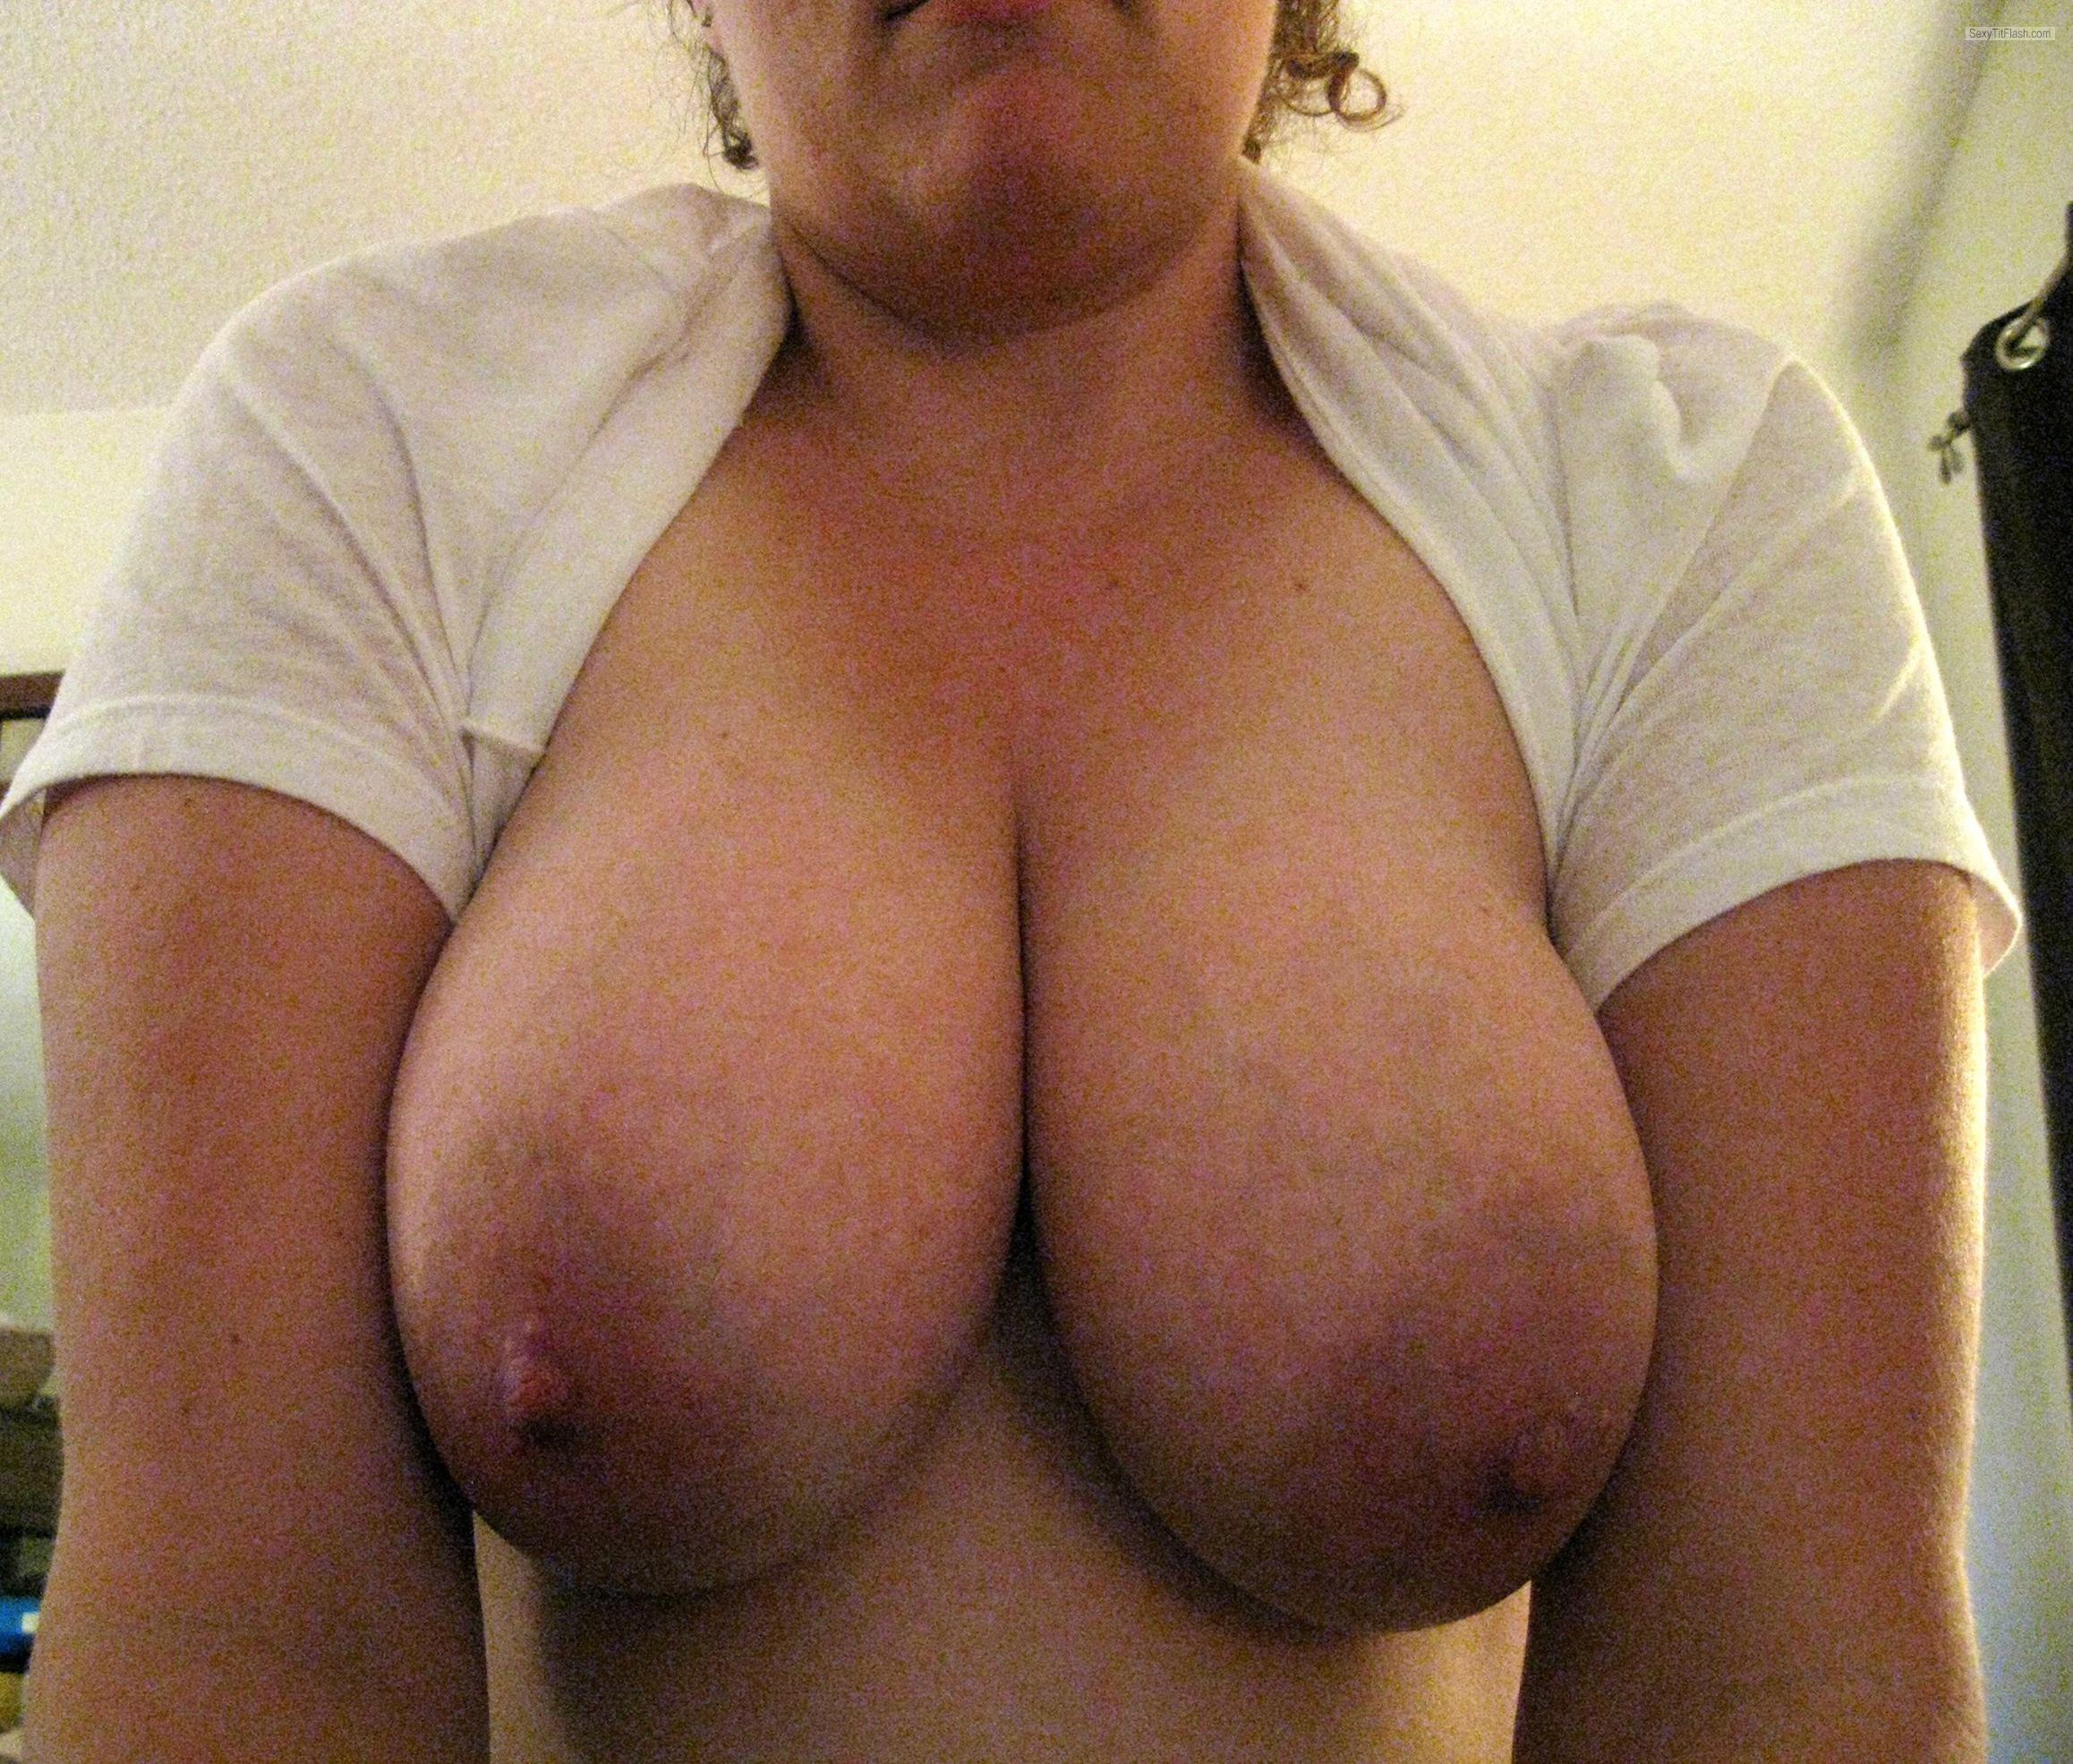 Tit Flash: Wife's Big Tits - MtnWife from United States